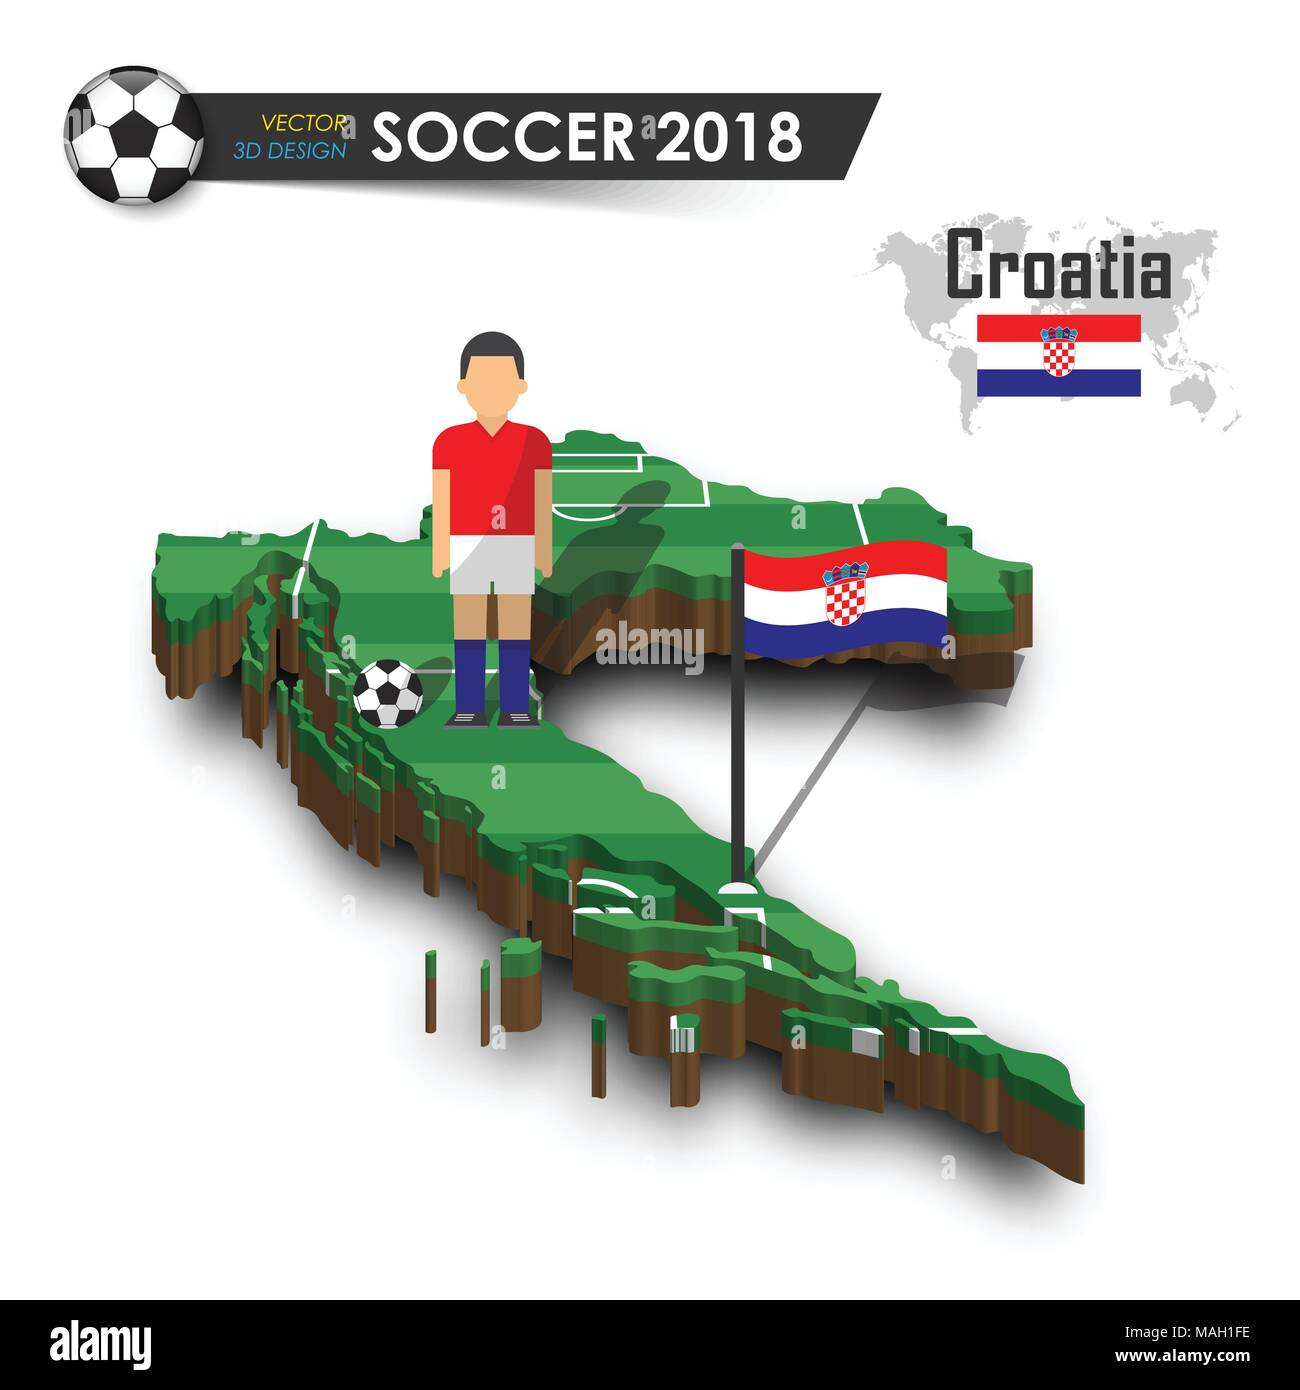 Croatia national soccer team . Football player and flag on 3d design  country map . isolated background . Vector for international world  championship t 94824149b